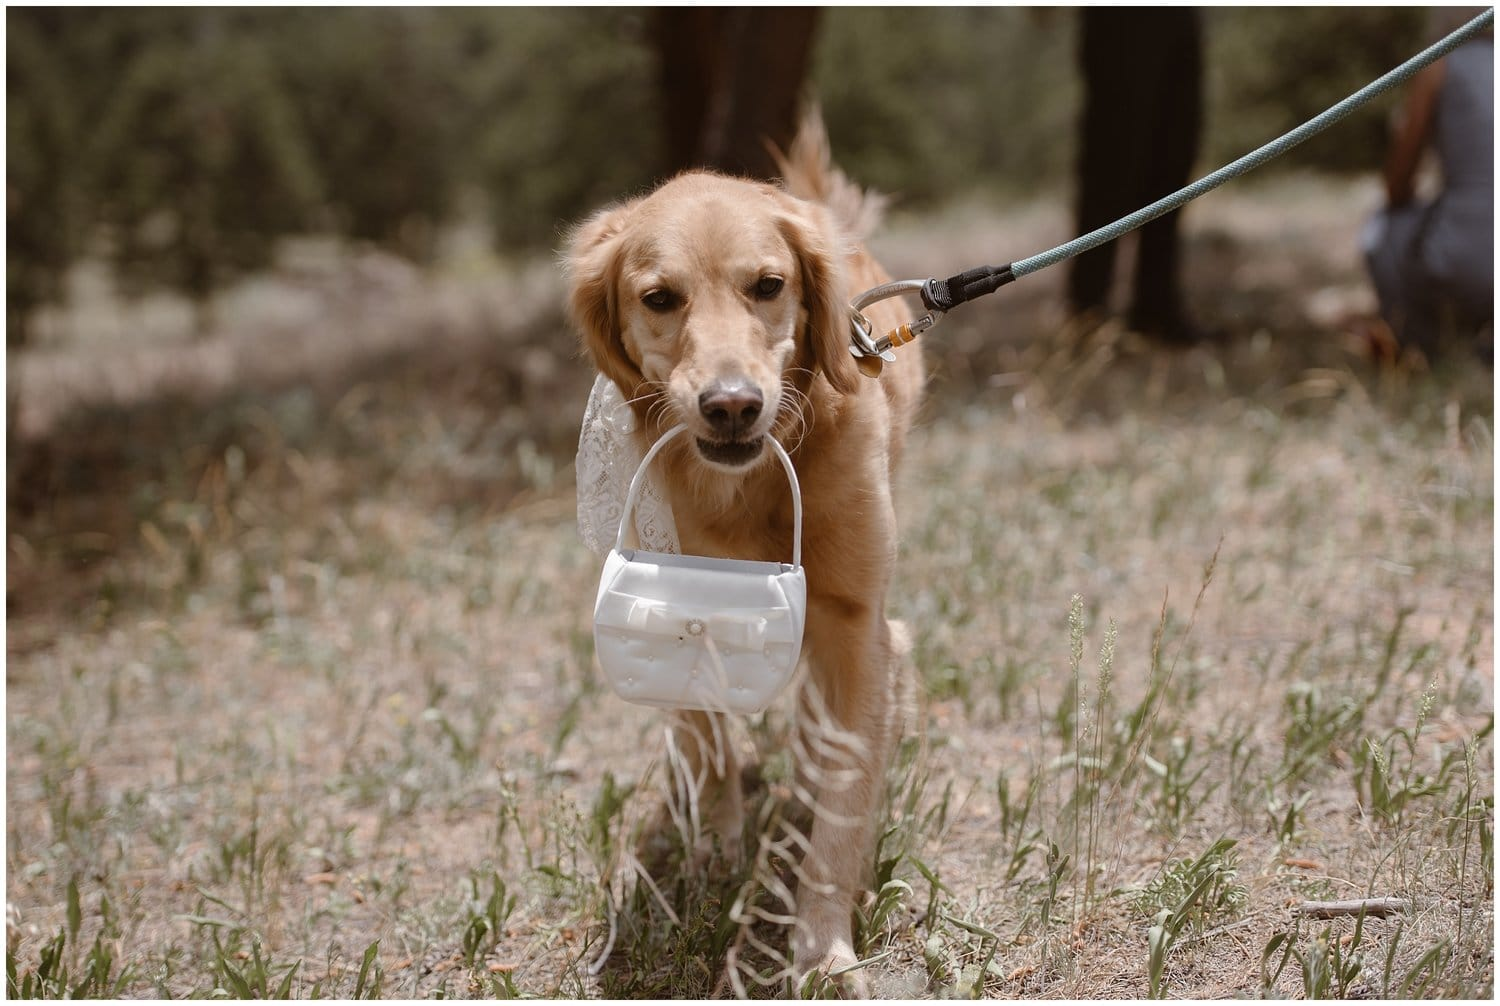 A dog holds a white purse in his mouth while on a leash.